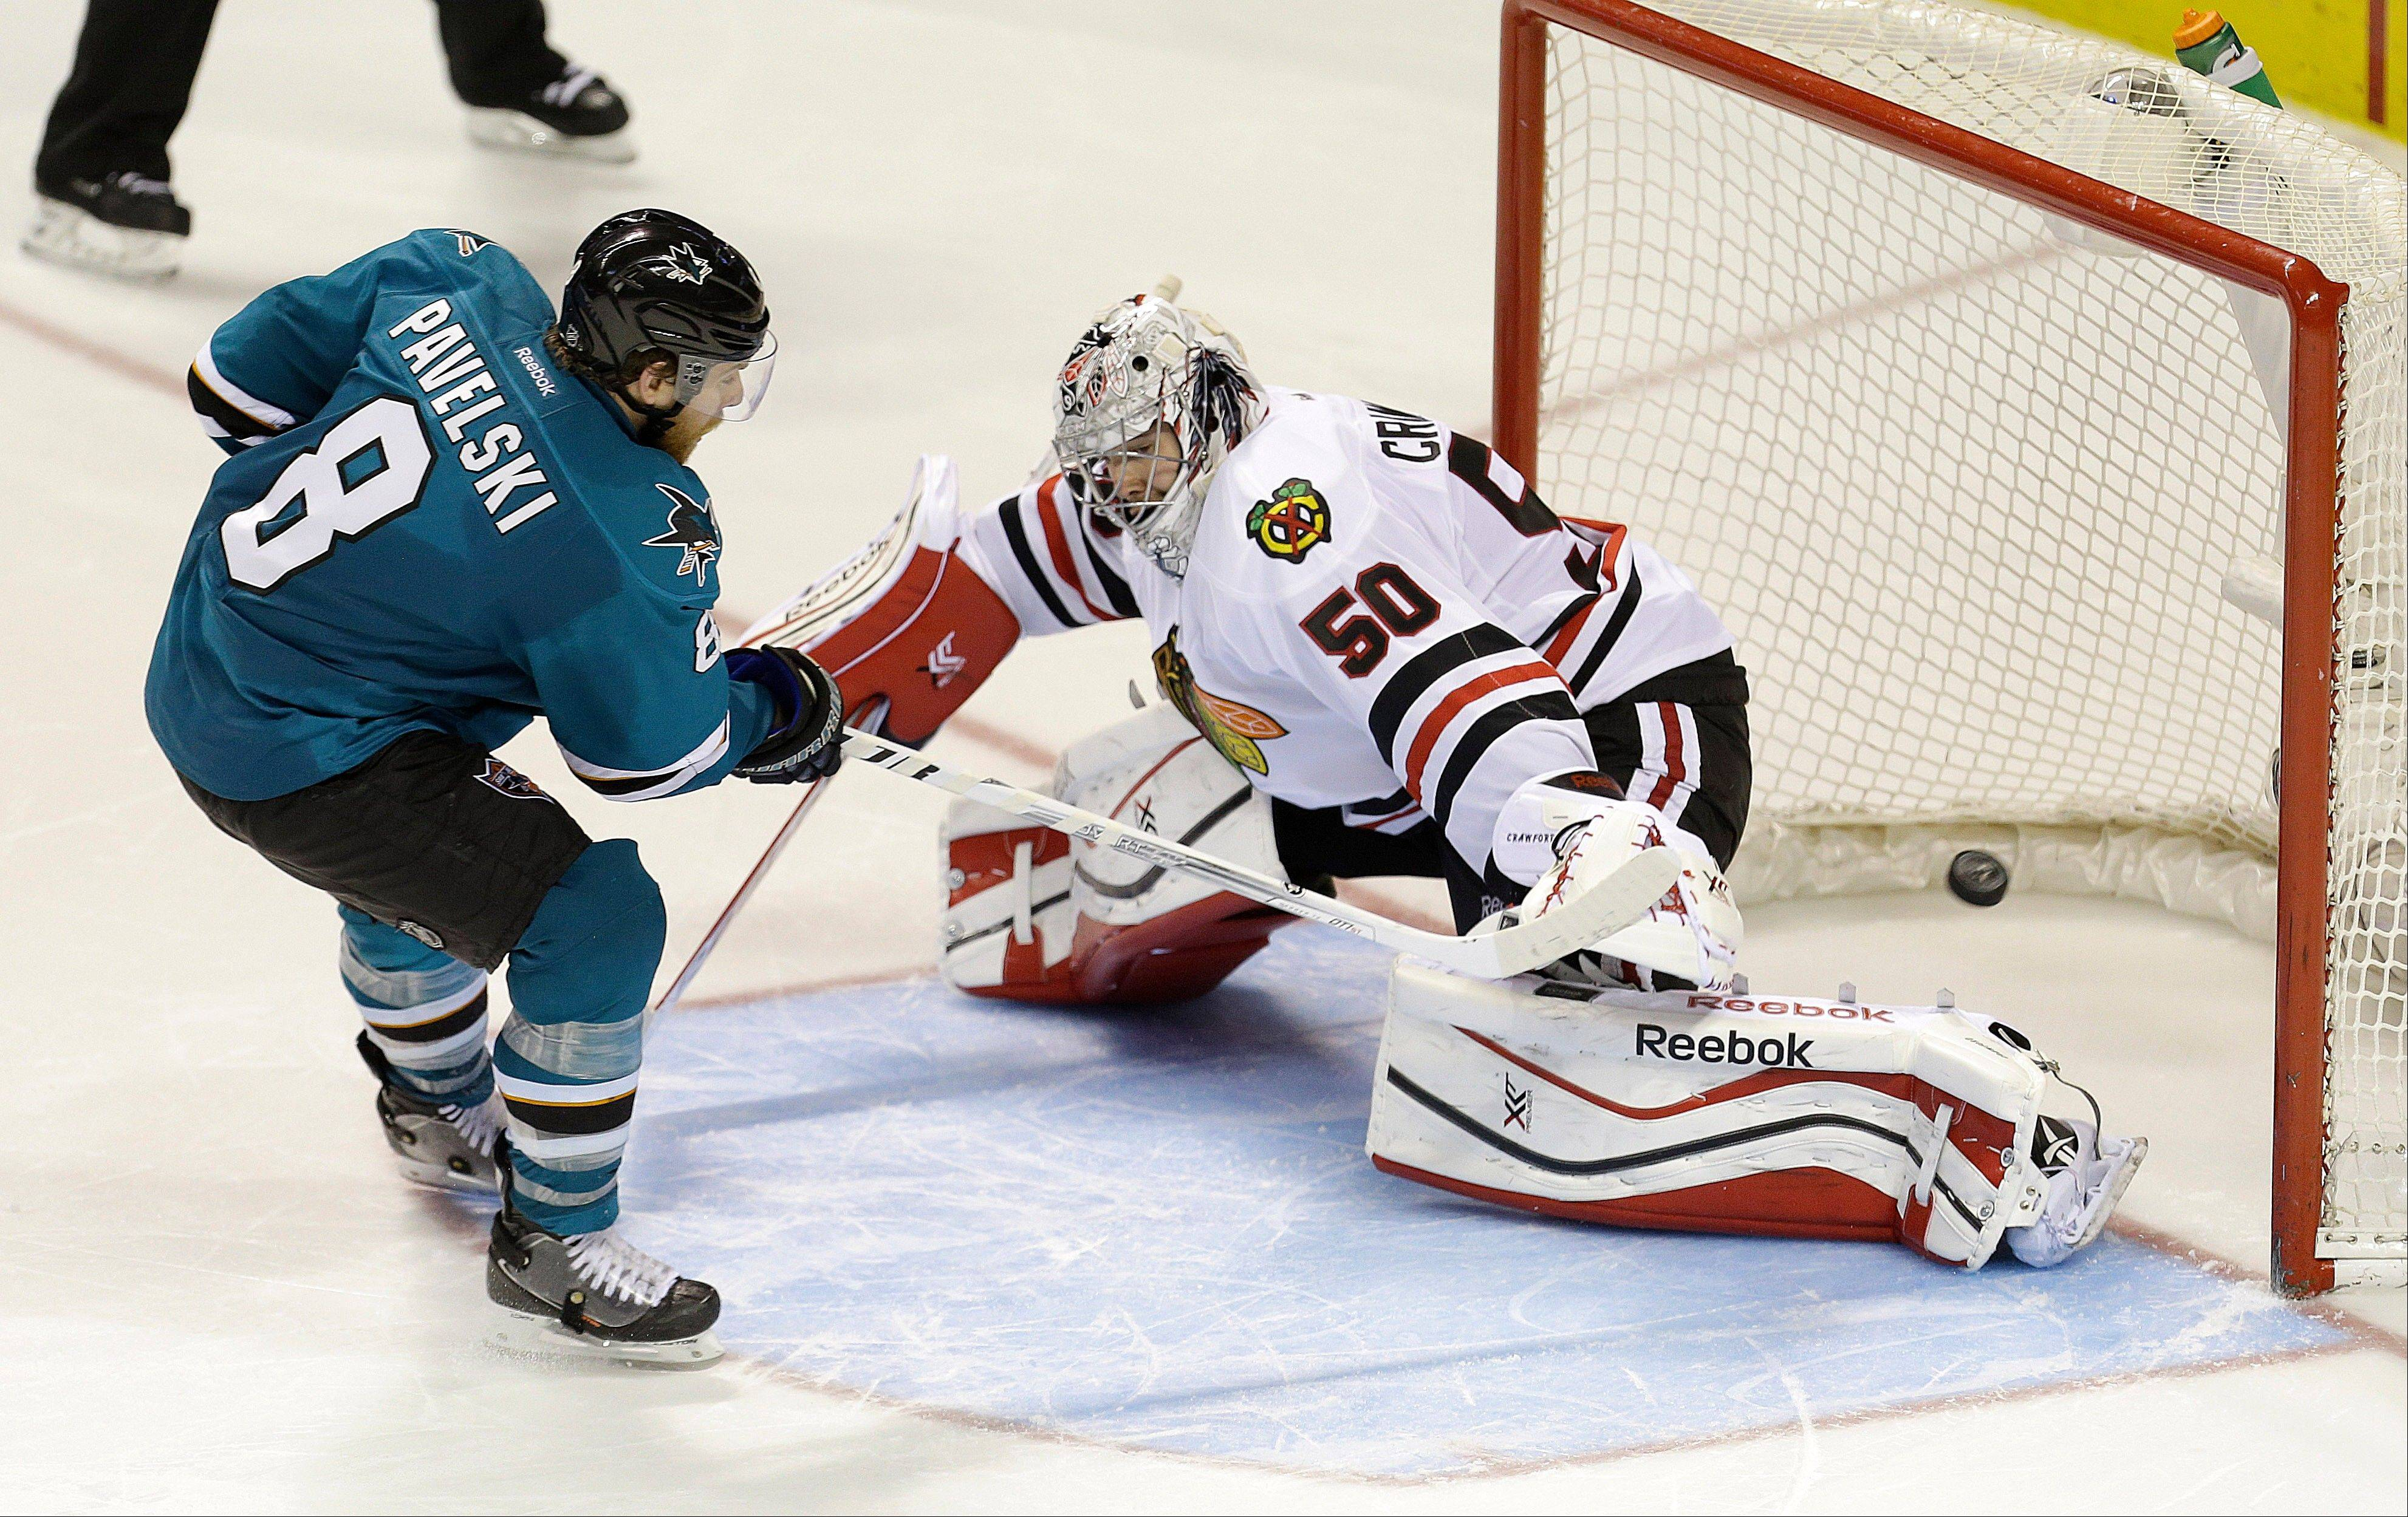 Associated PressThe Sharks' Joe Pavelski scores a goal in a shootout, beating Blackhawks goalie Corey Crawford on Saturday night in San Jose, Calif.